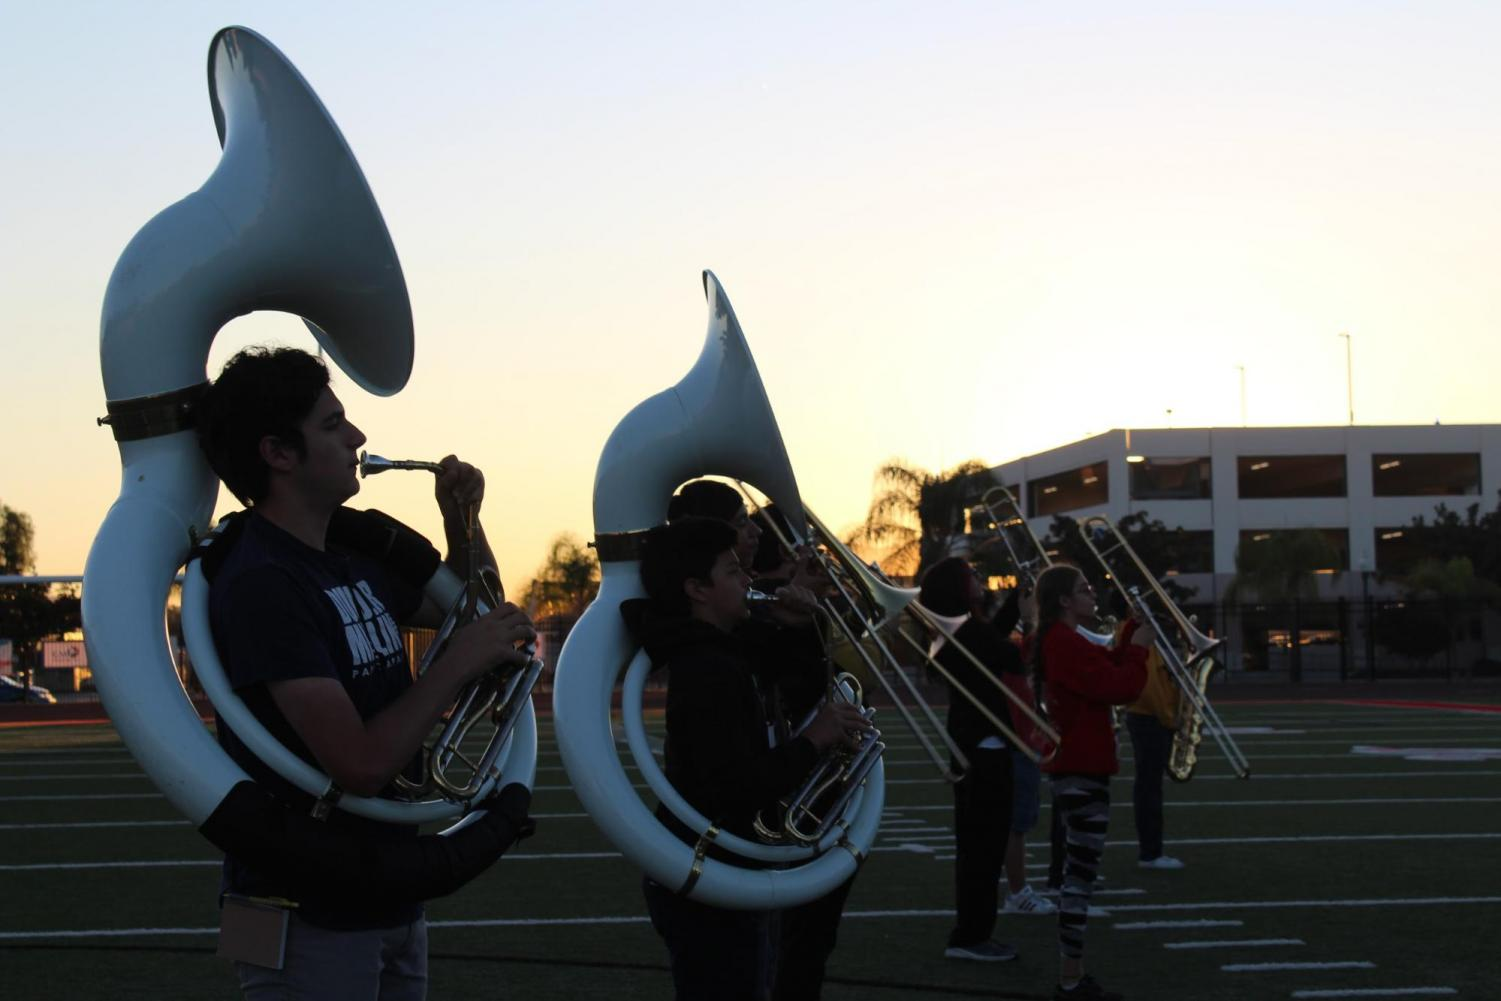 Sophomores Jameson Oates and Chris Rodriguez play the tuba while Sophomore Caleb Sutter and Freshman Leah Chappell play the trombone. Photo by Betsy Barreto.